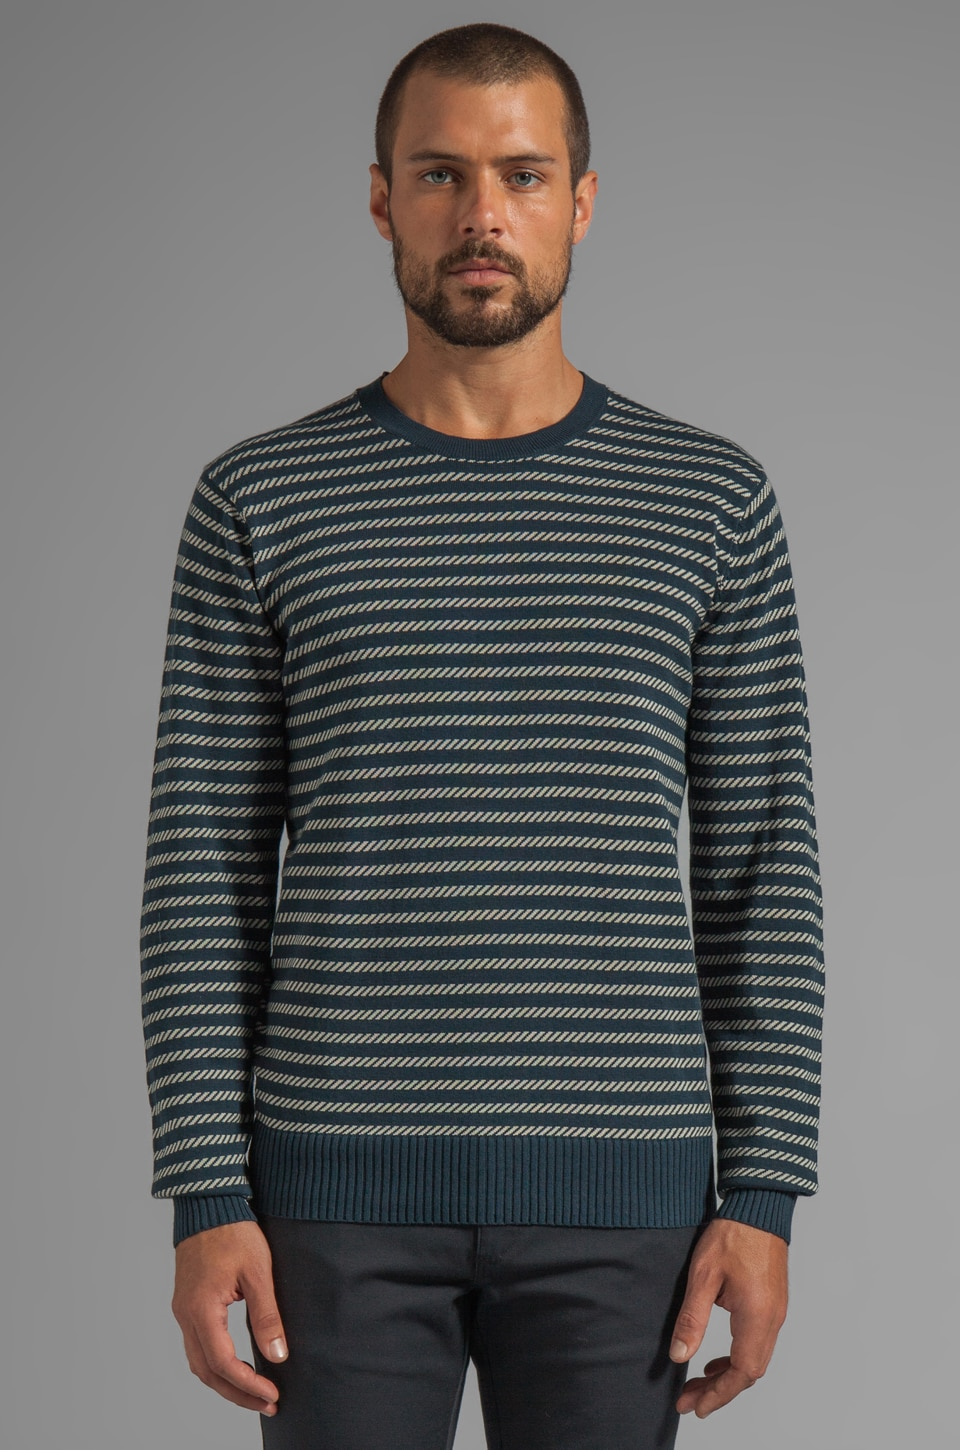 RVCA B-Sider Crew Pullover Sweater in Midnight